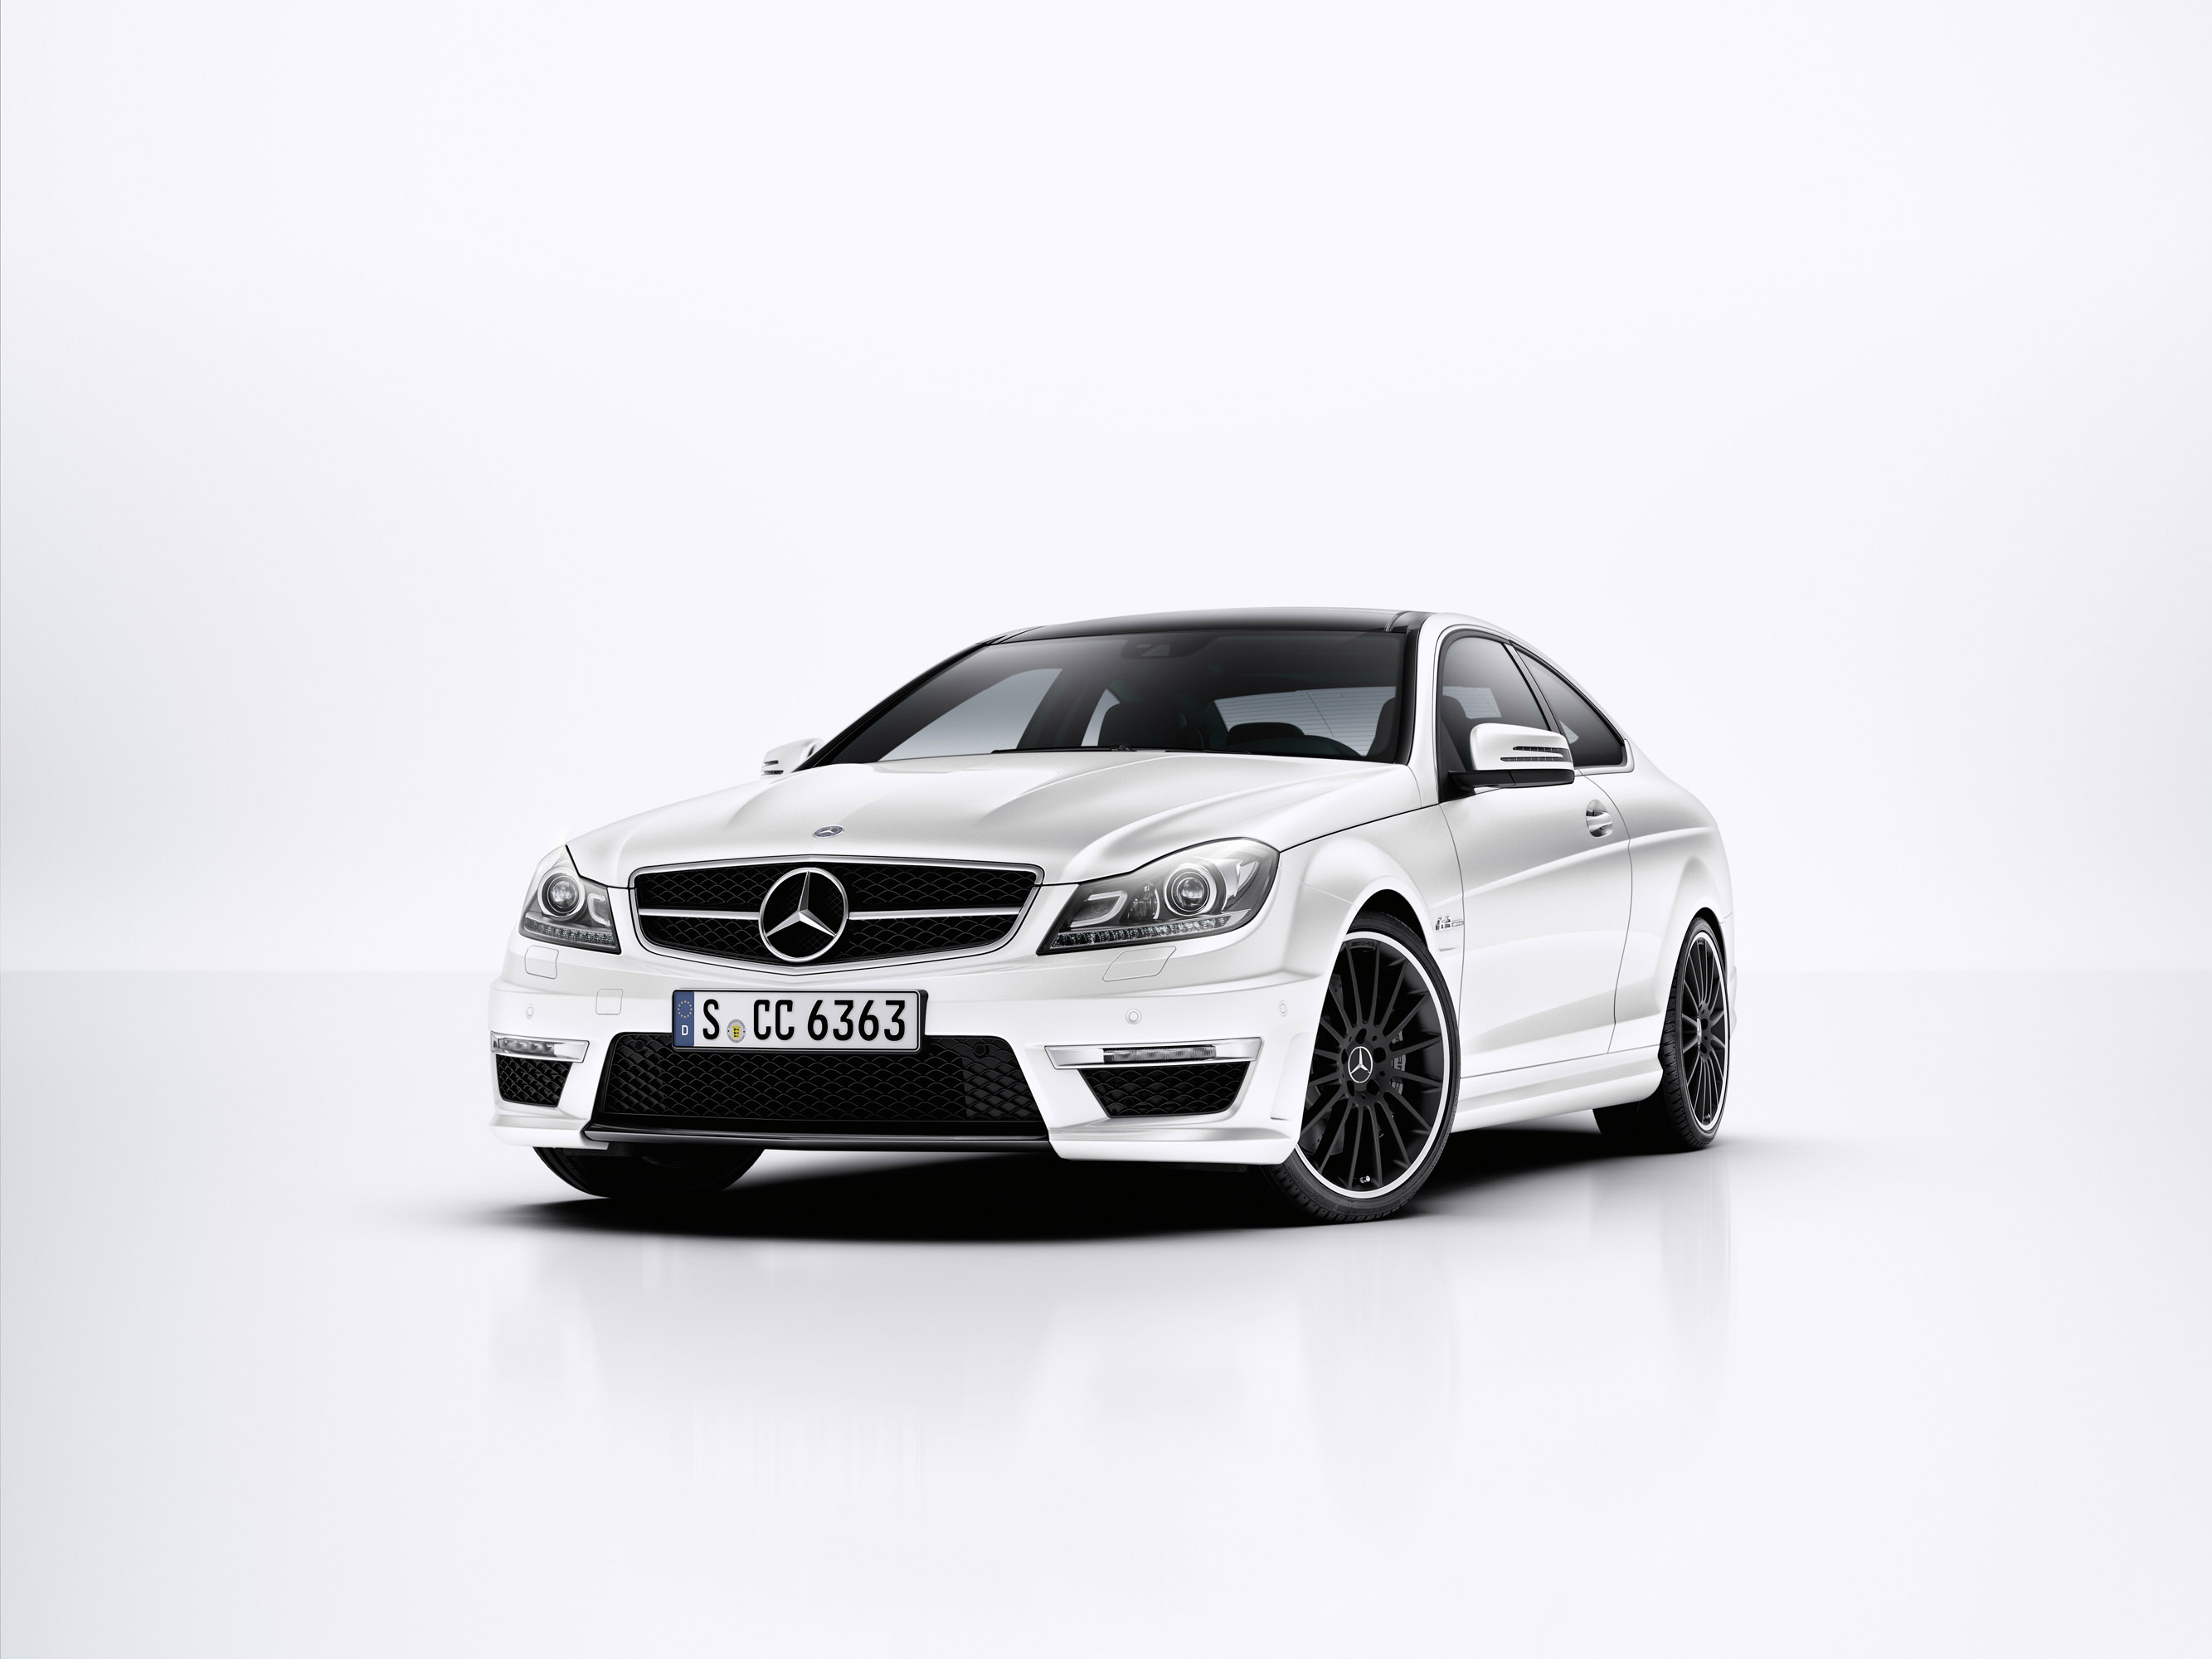 2012 mercedes c63 amg coupe - 2012 mercedes c63 amg coupe ...